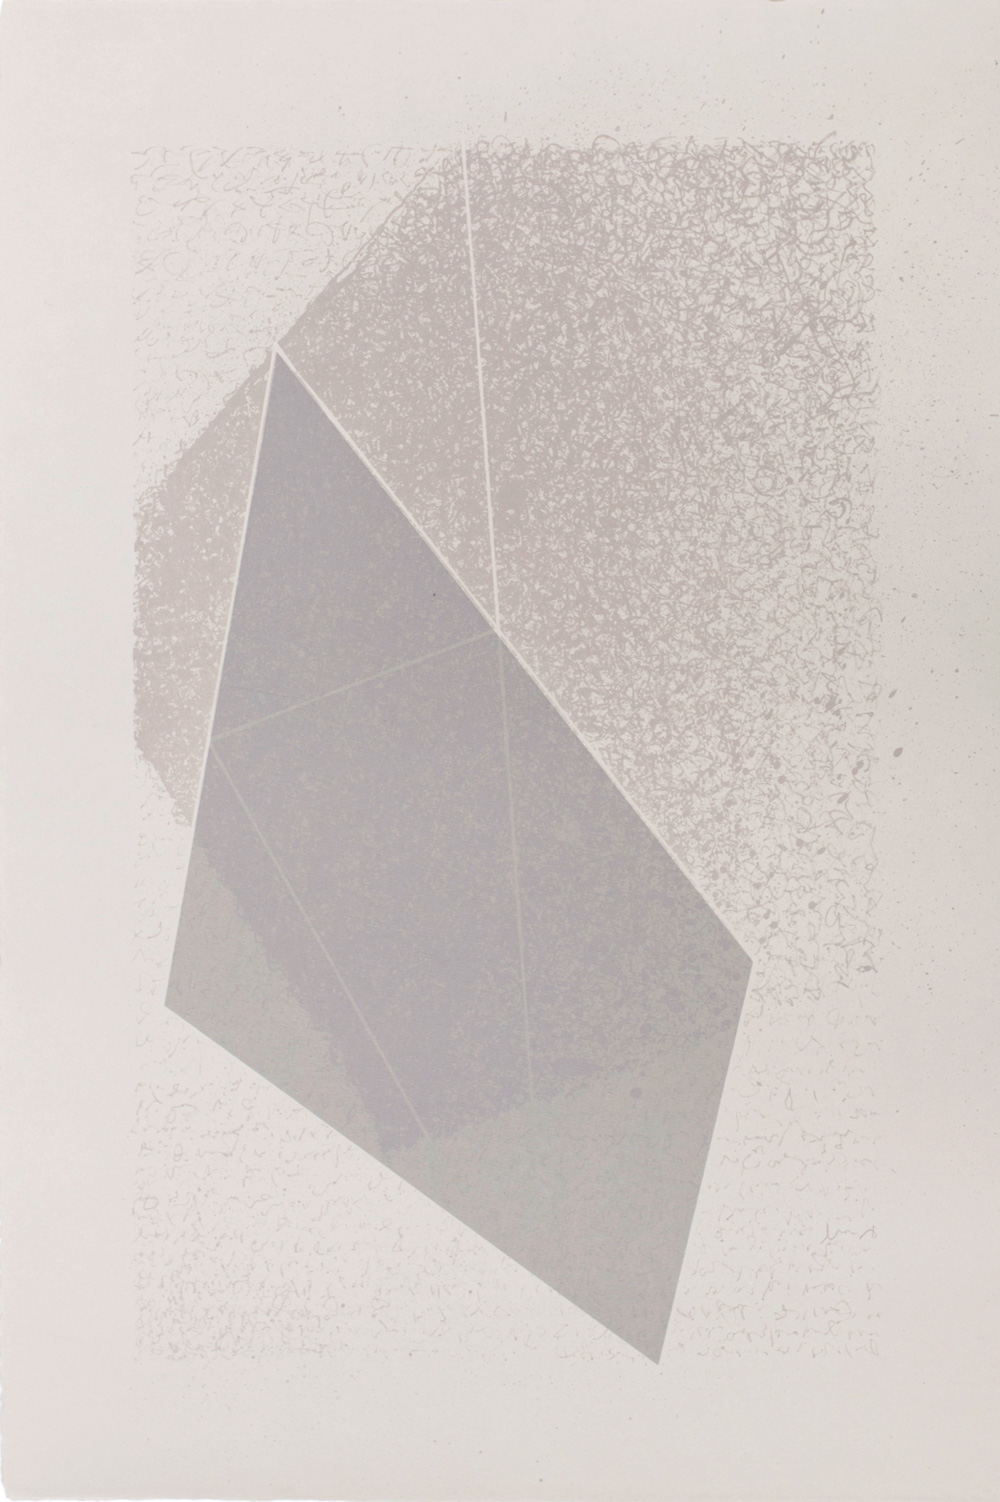 Albuquerque Colour Cube,  2015, Lithograph, 50 x 35cm